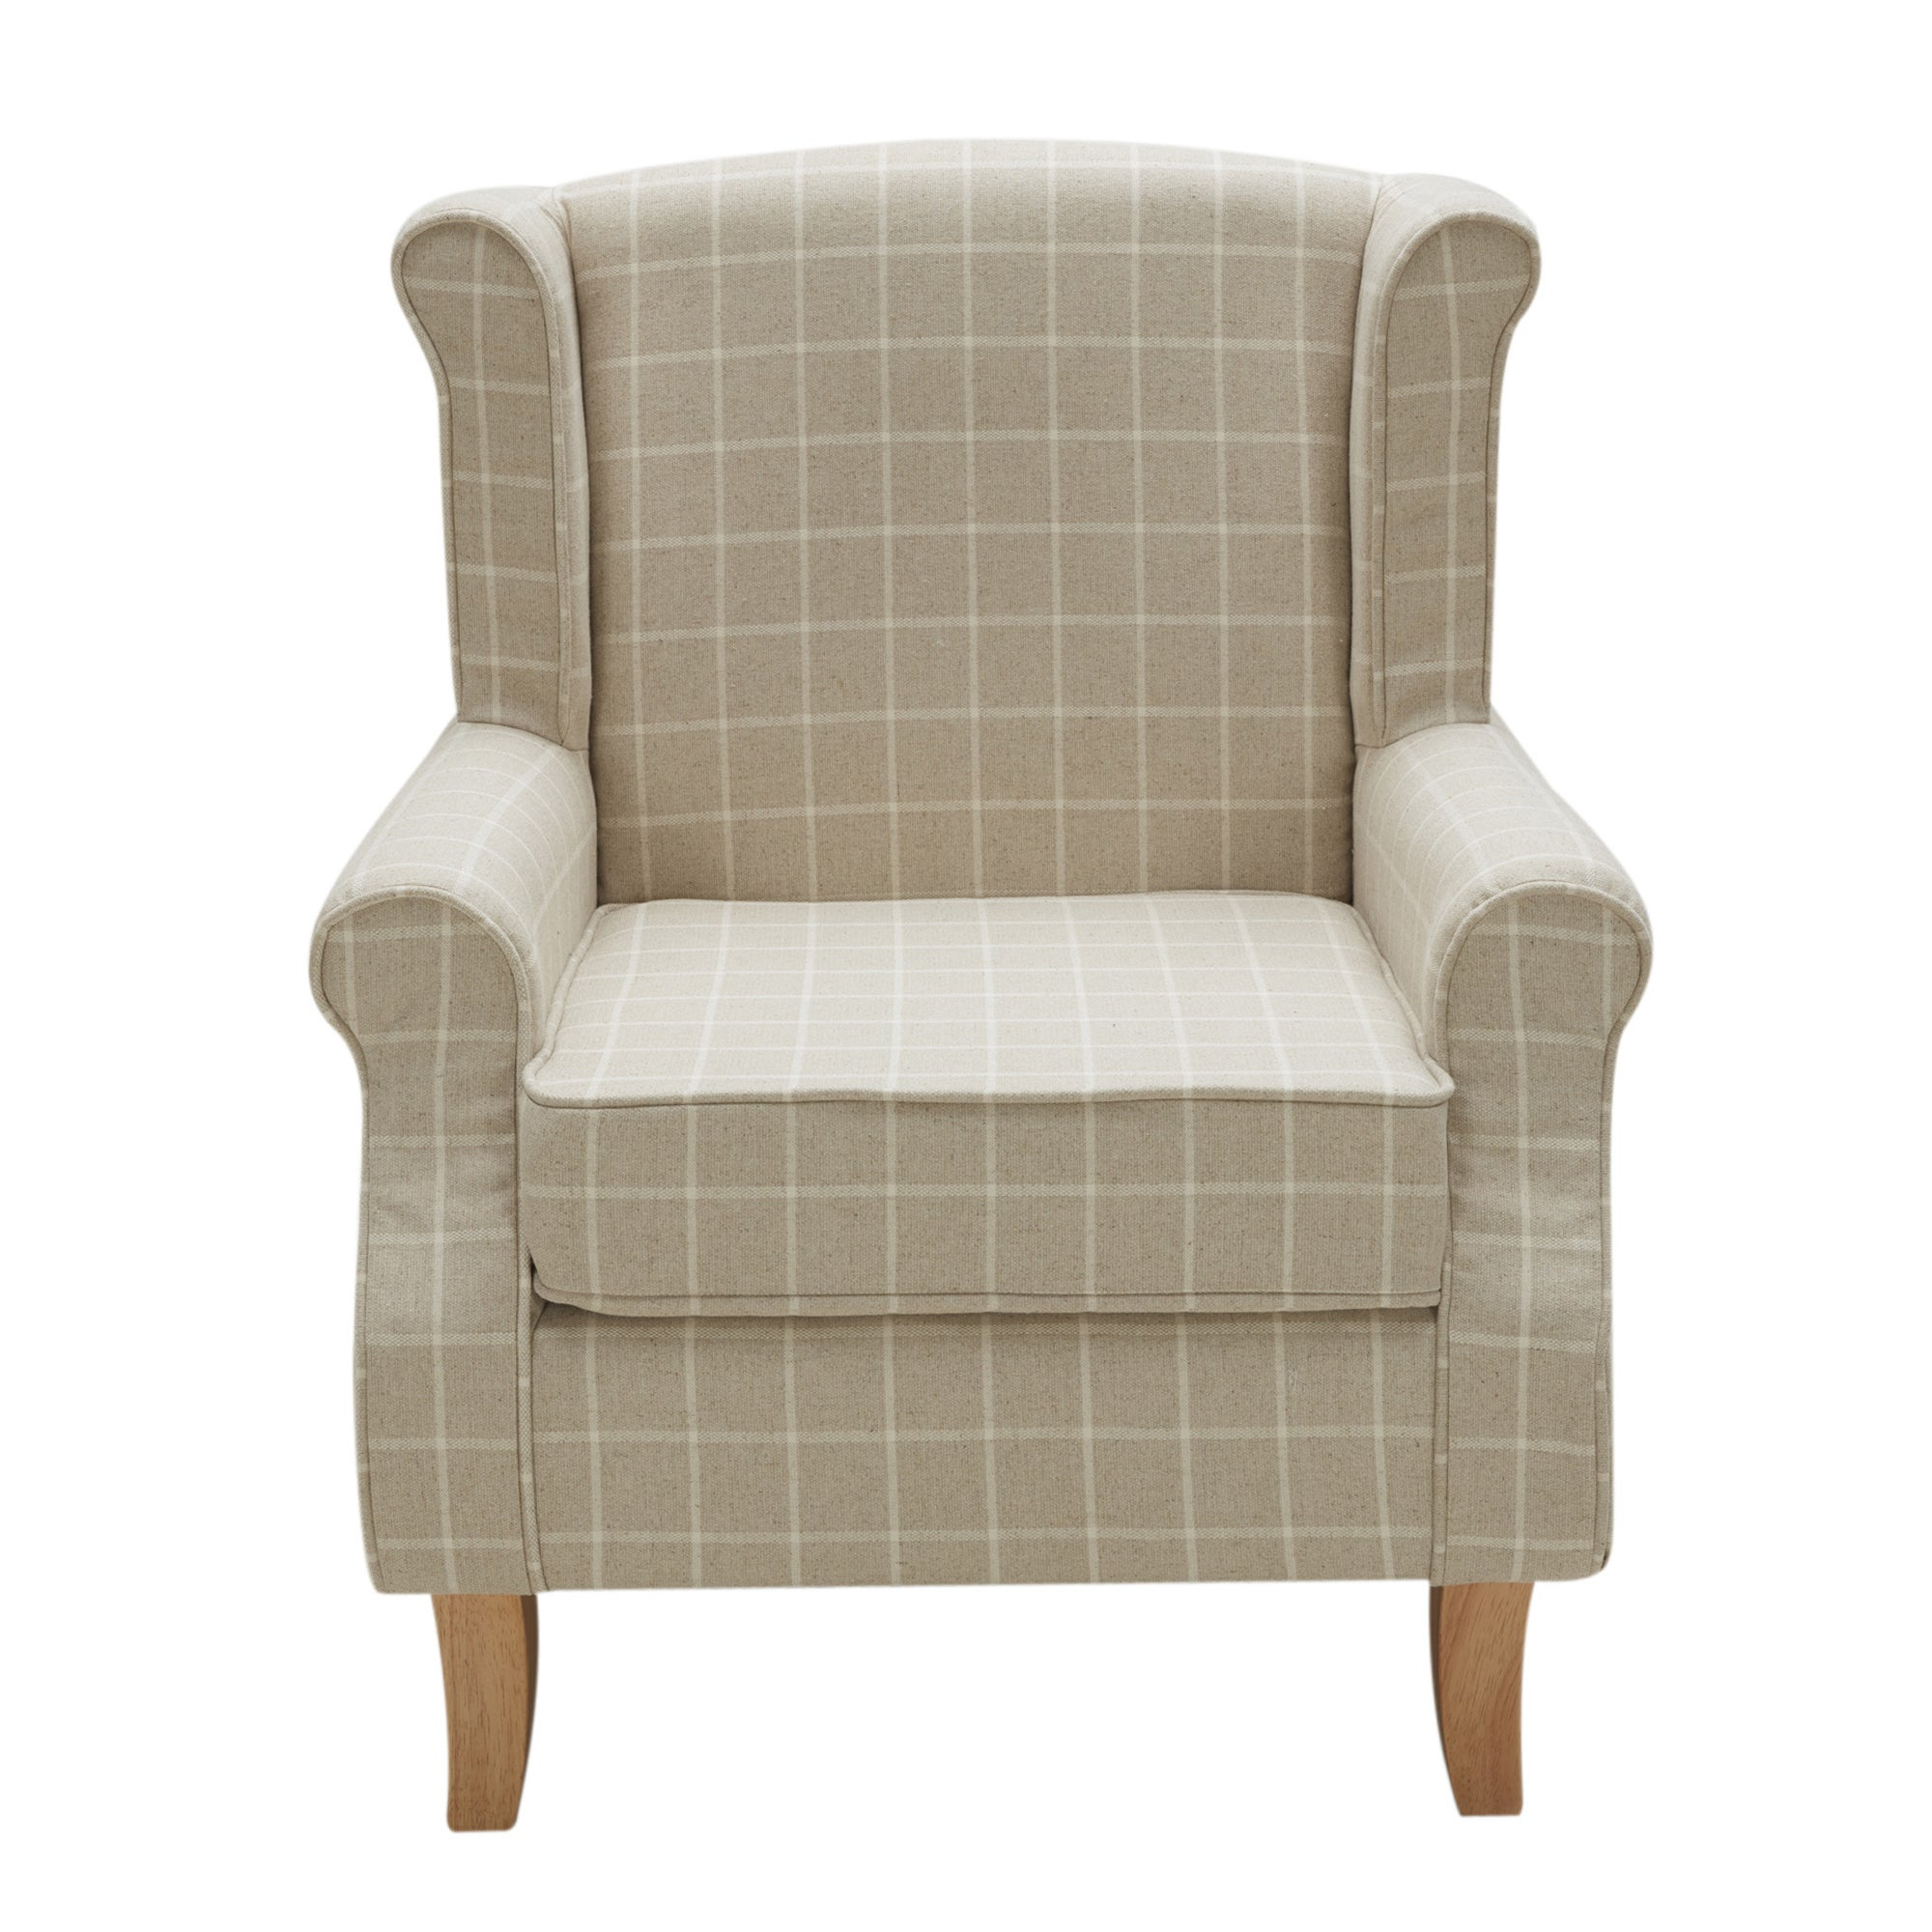 Main Deskpdpmain 404 Noimagedefault Natural Check Edinburgh Wingback Chair